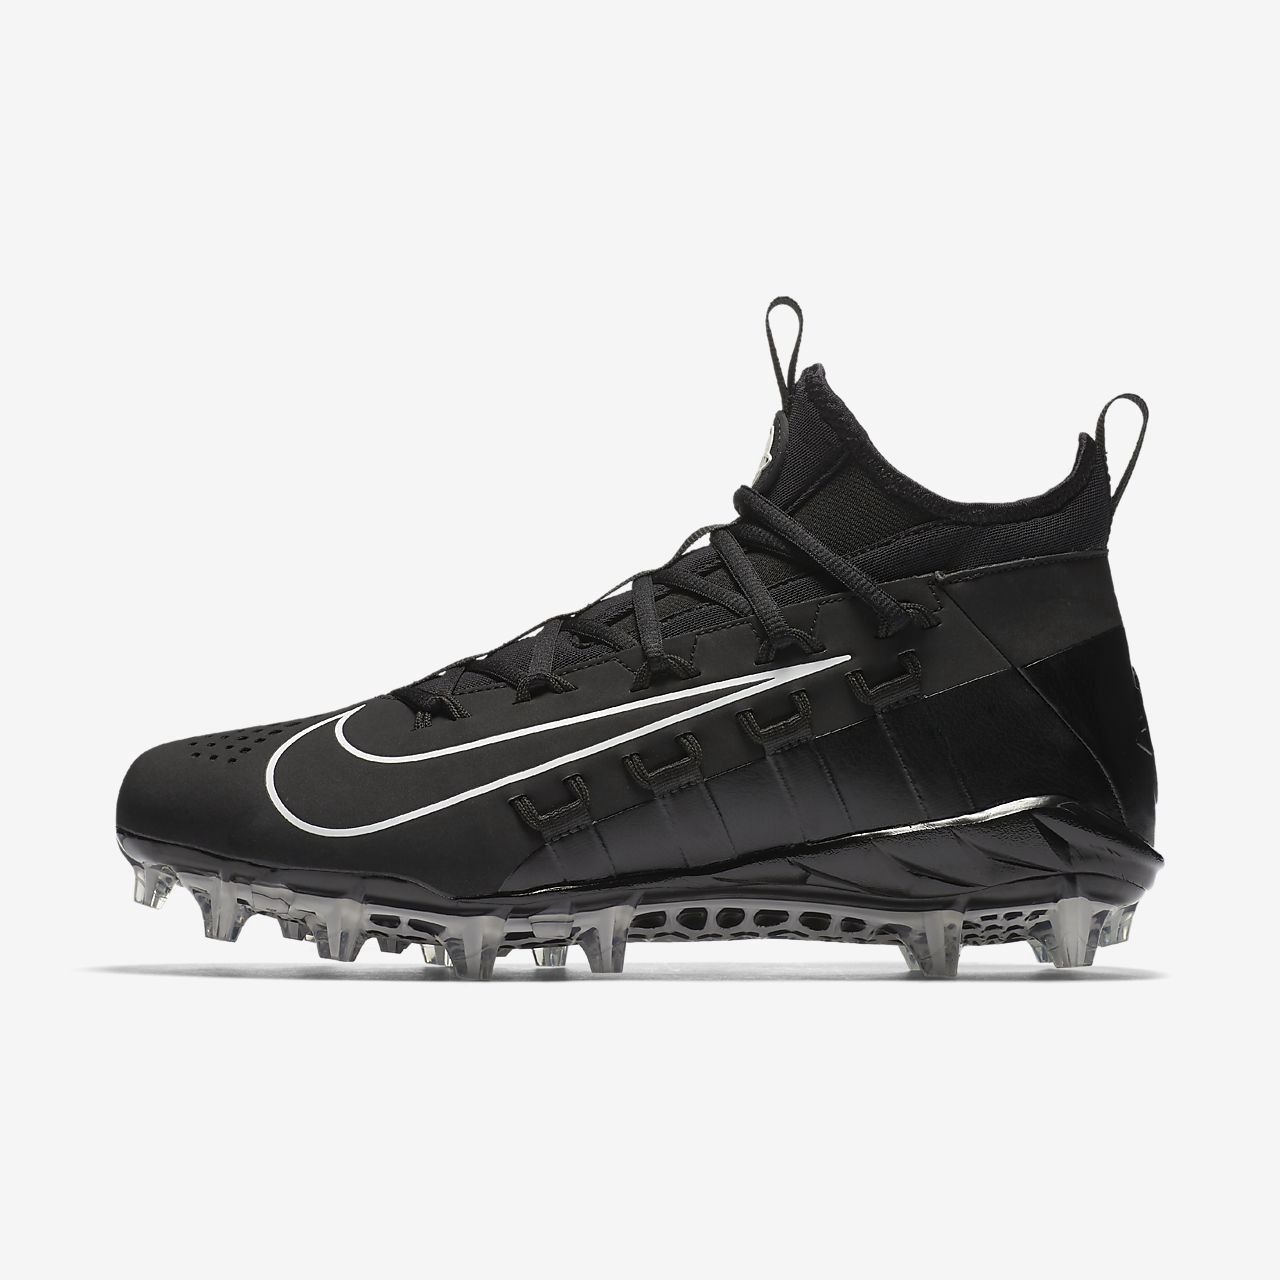 wholesale dealer 7159f 6c70d Nike Alpha Huarache 6 Elite Lax Lacrosse Cleat - M 12.5   W 14